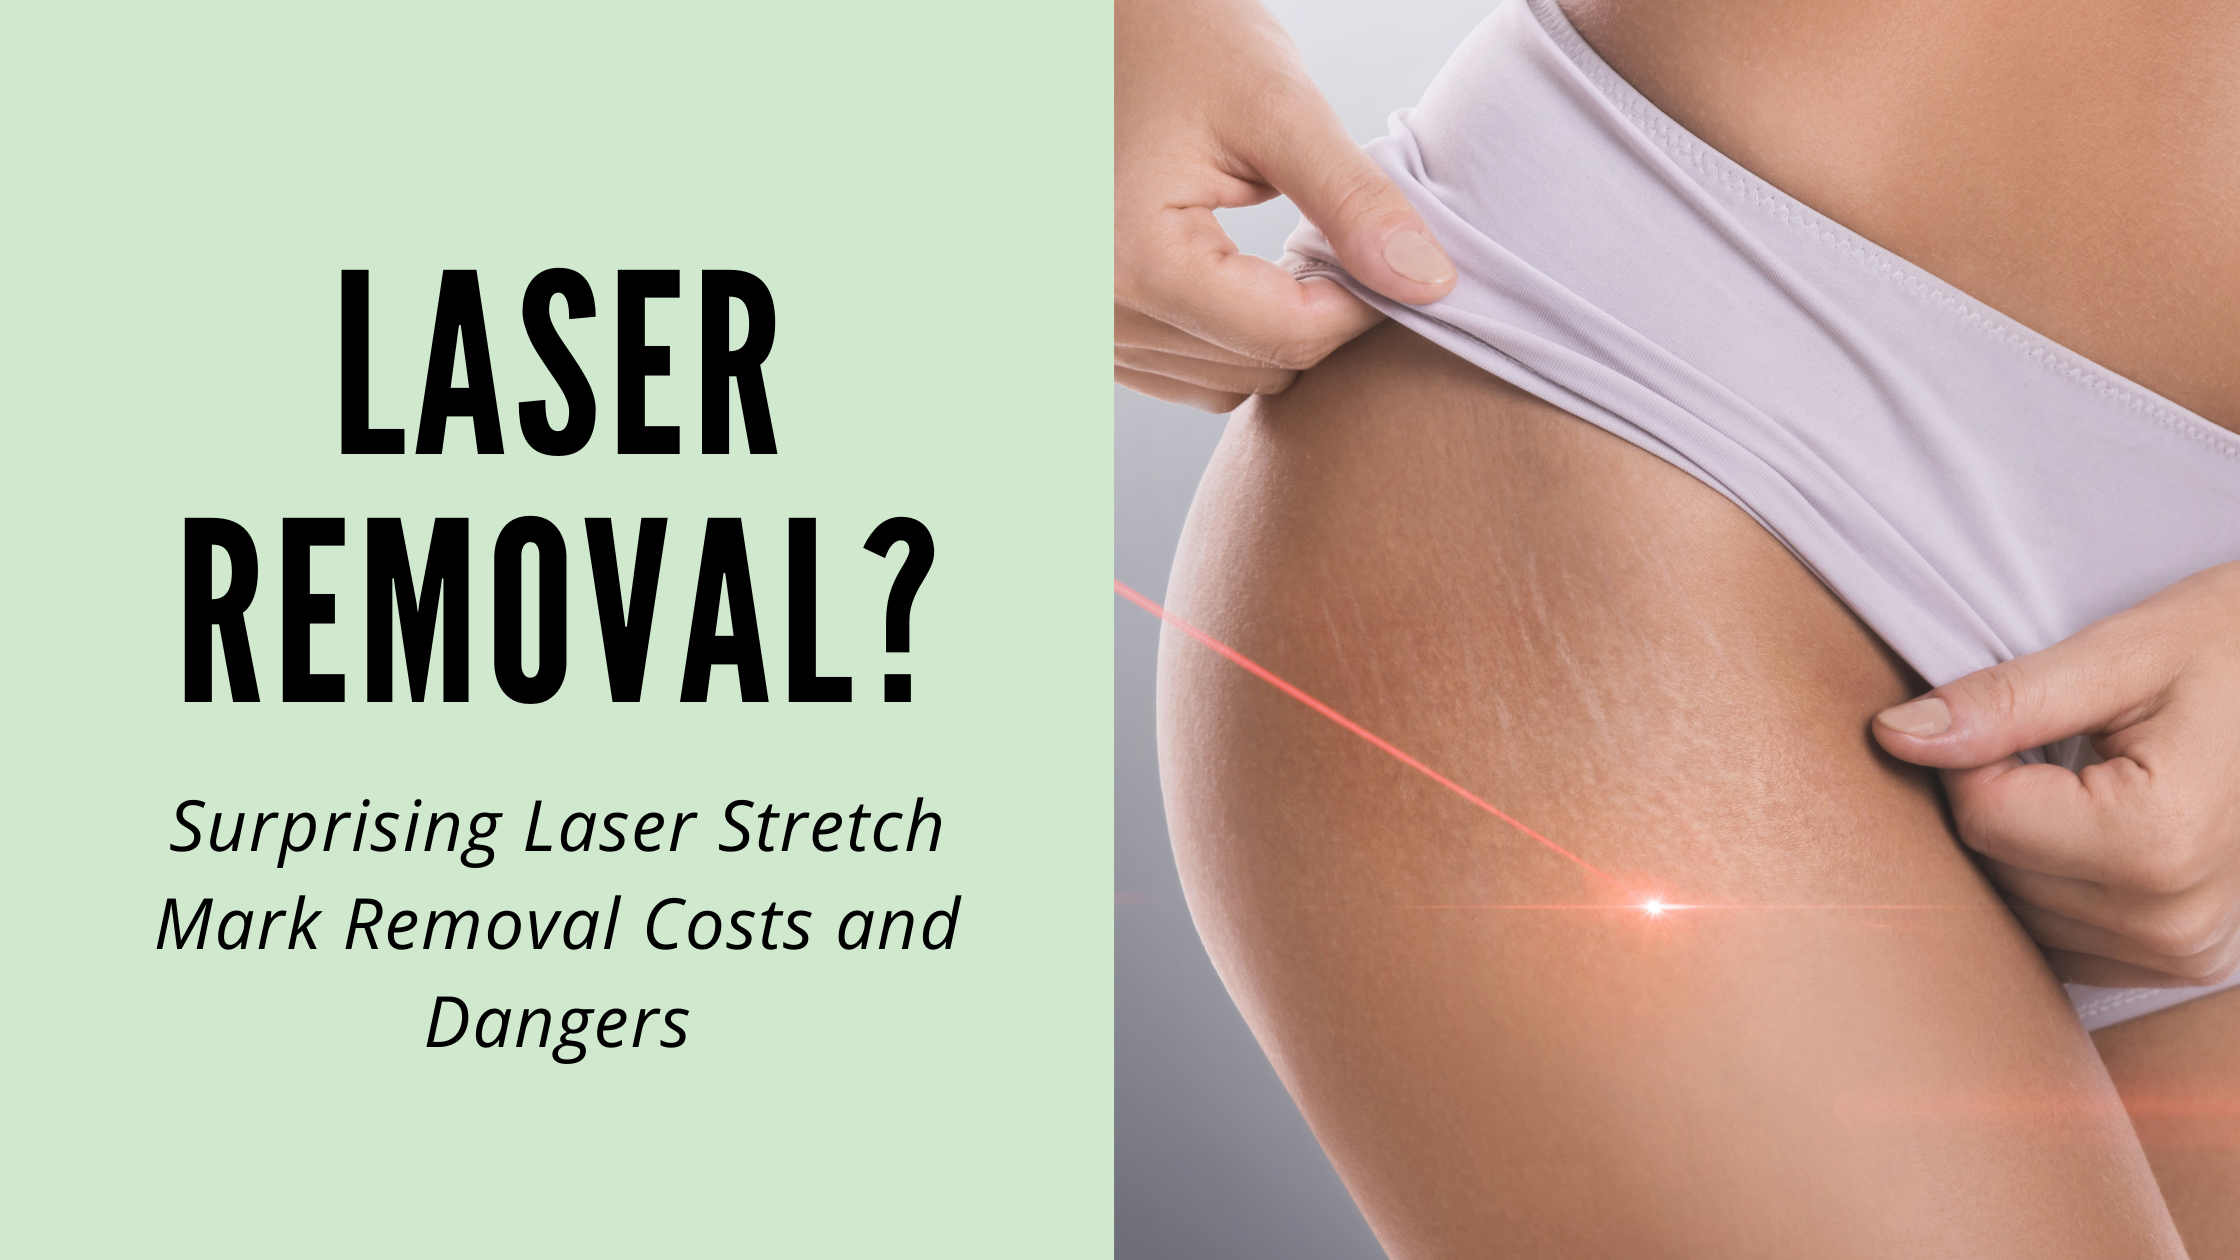 Surprising Laser Stretch Mark Removal Costs and Dangers